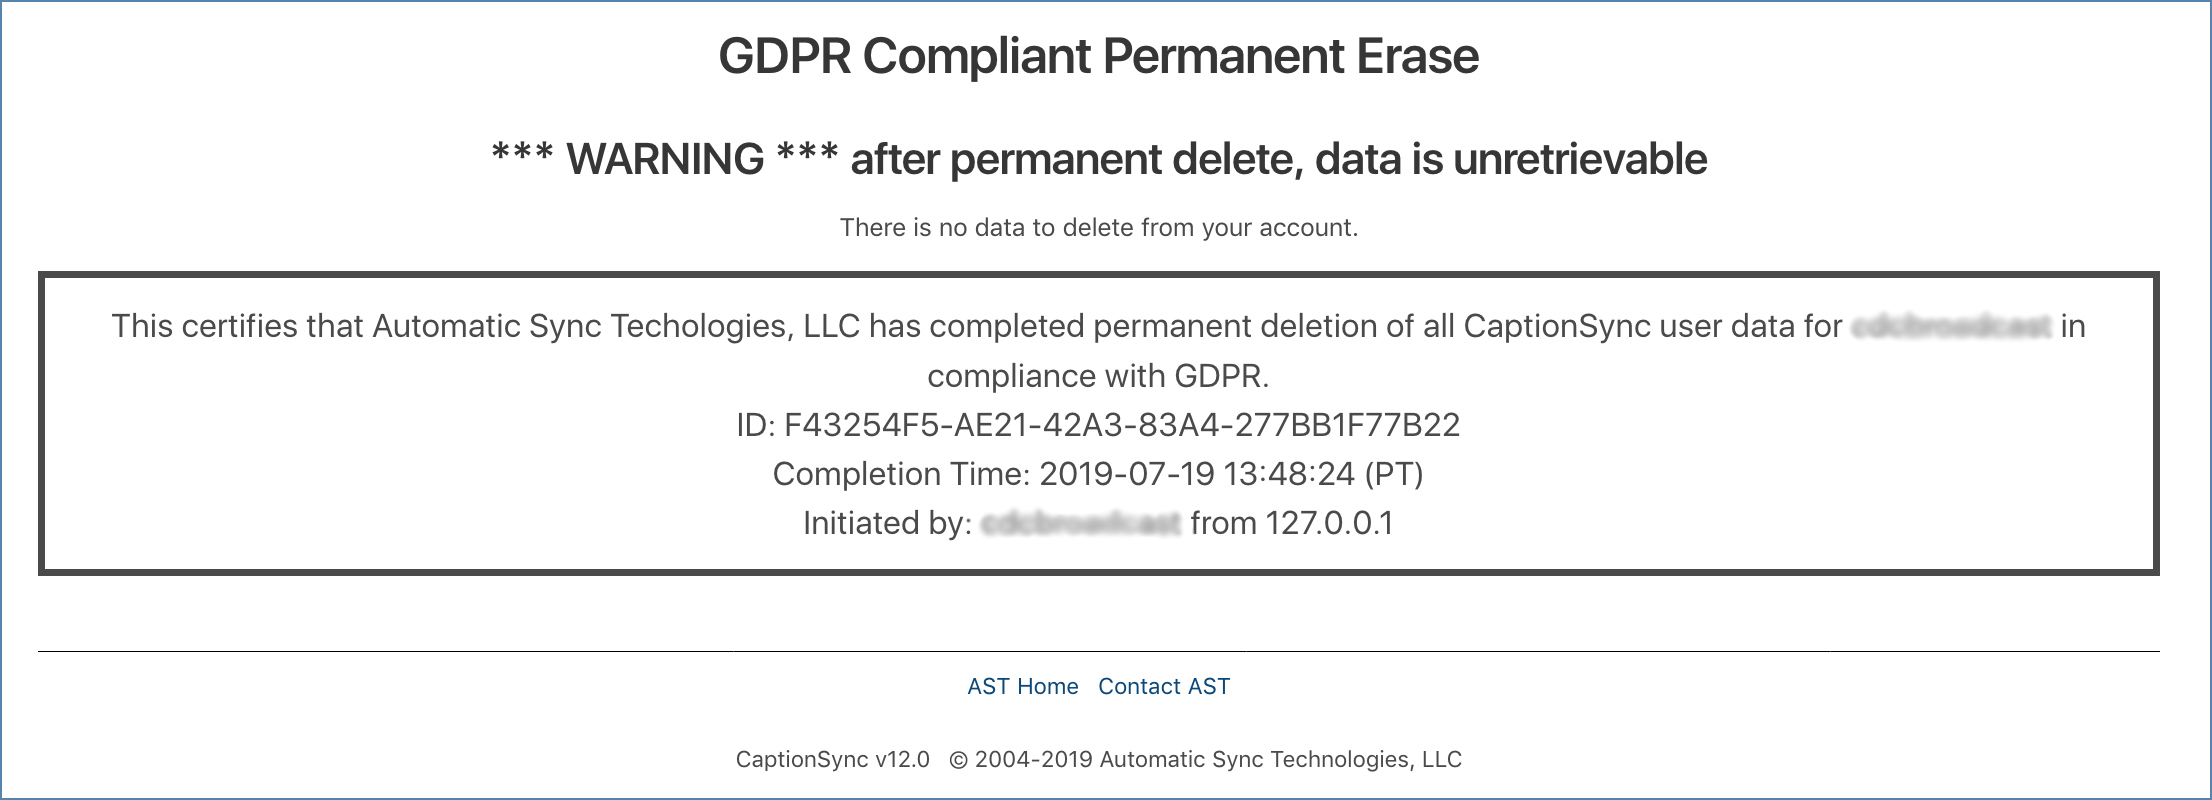 Image of the GDPR permament deletion completed page